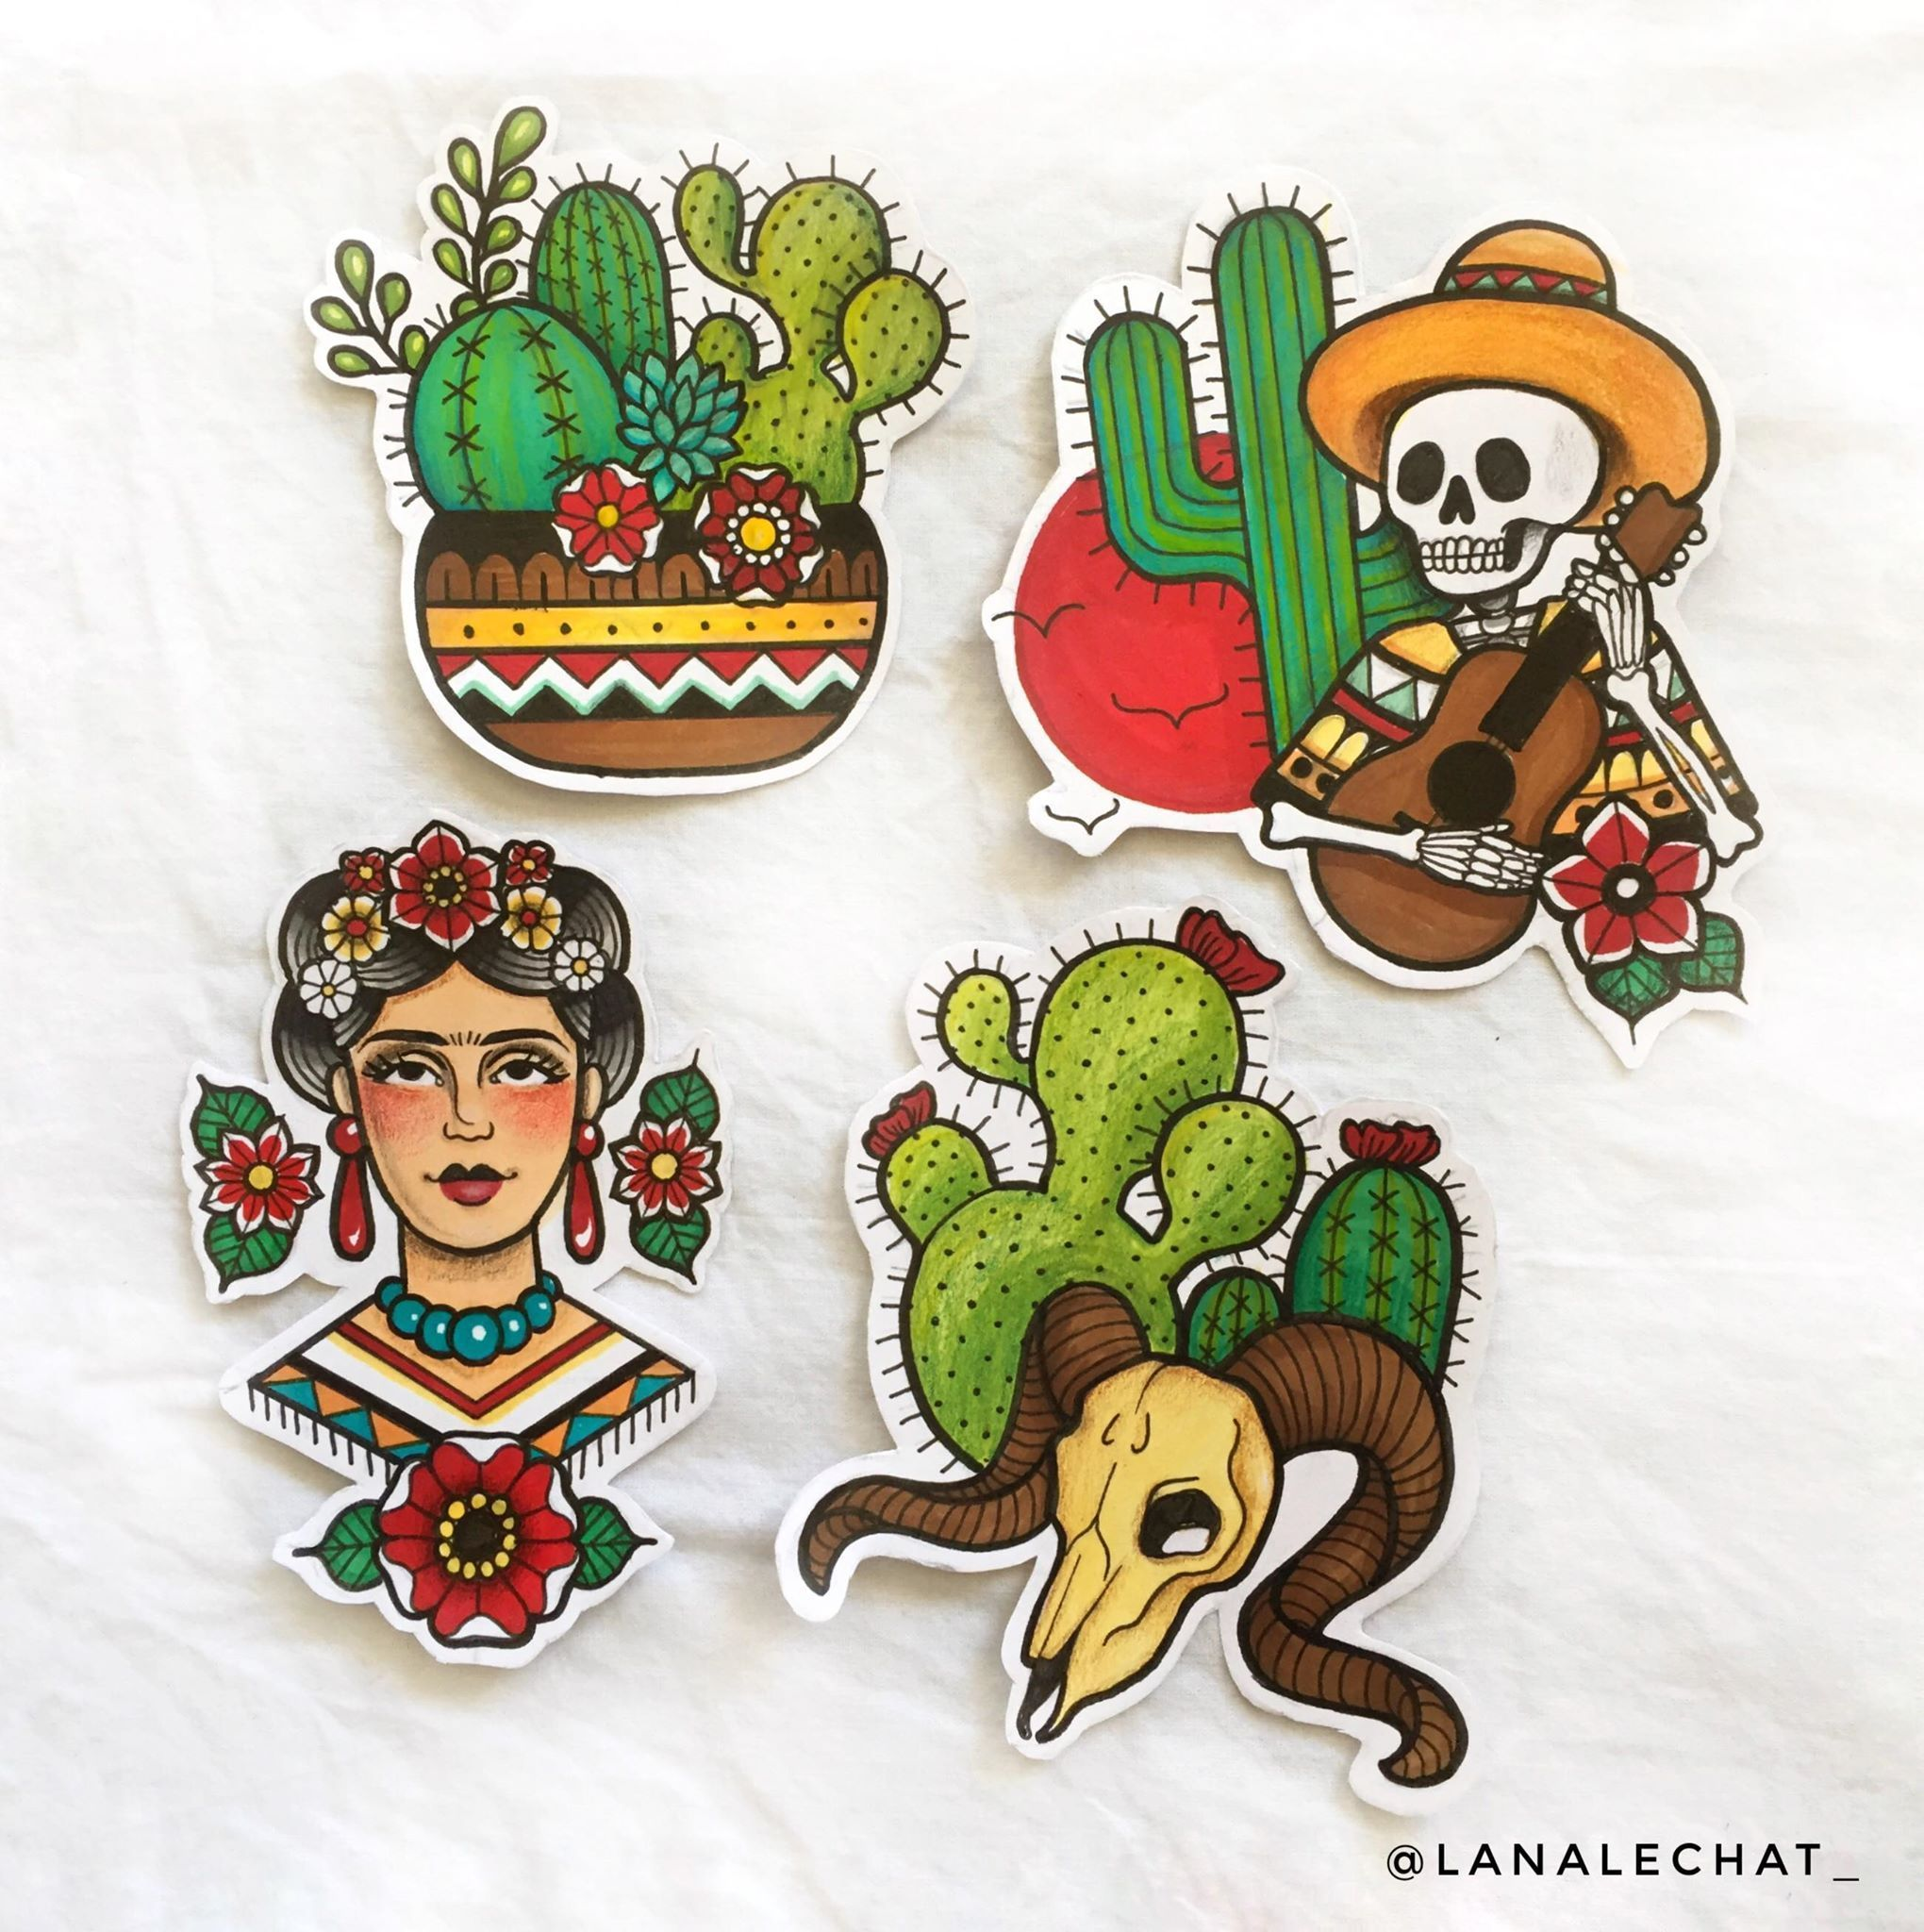 Mexican tattoo Calavera tattoo Old school tattoo Inked Cactus tattoo Frida Kahlo Tattoo